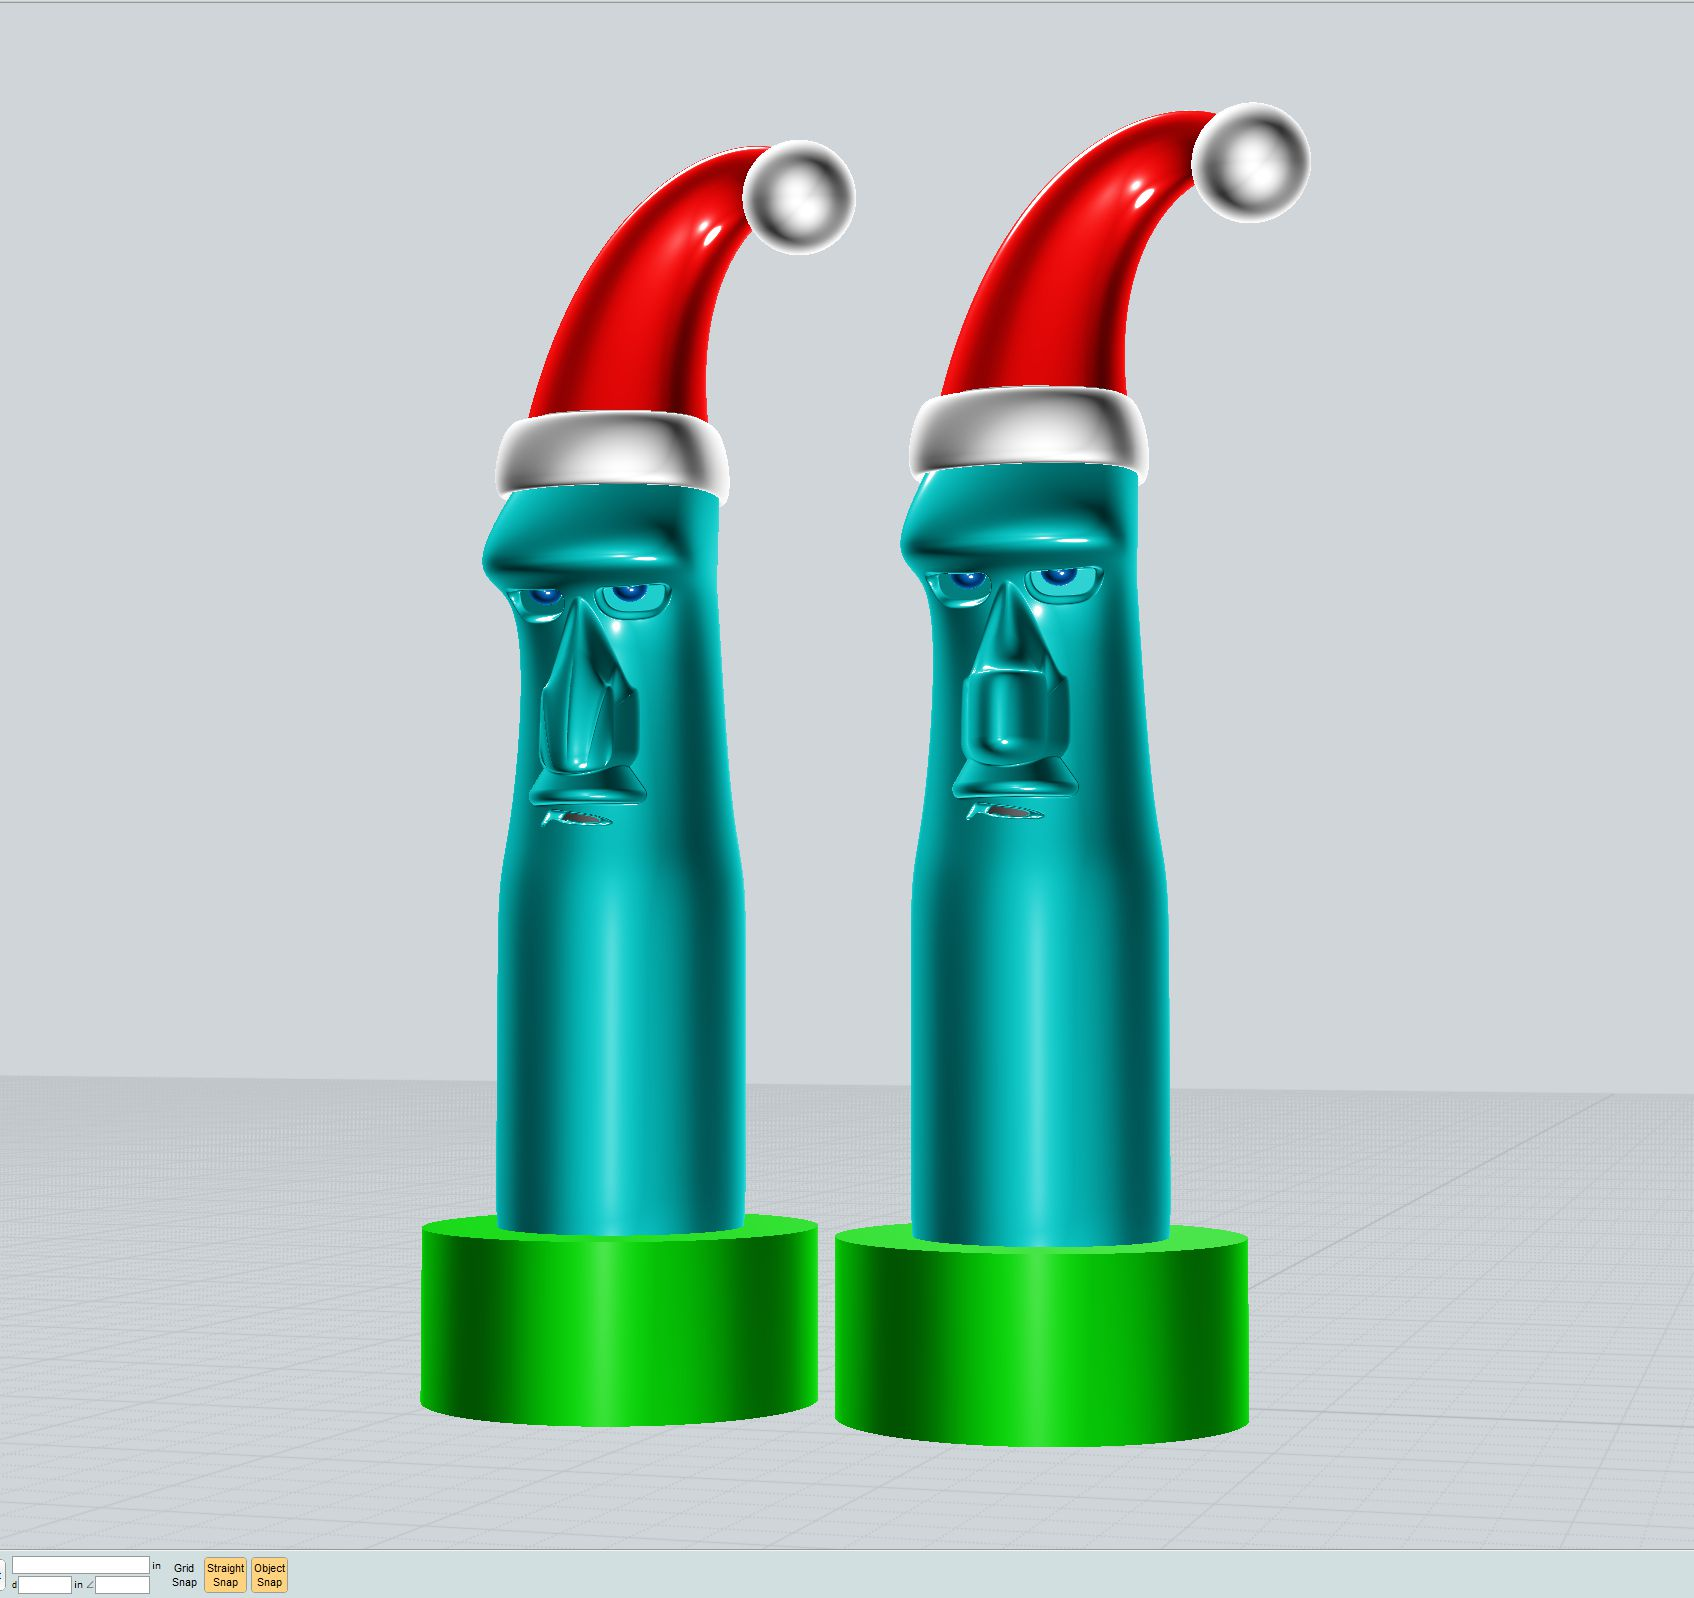 3d Home Design Images Download Design A House 3d  : moai20christmas from zenlaser.co size 1694 x 1598 jpeg 143kB